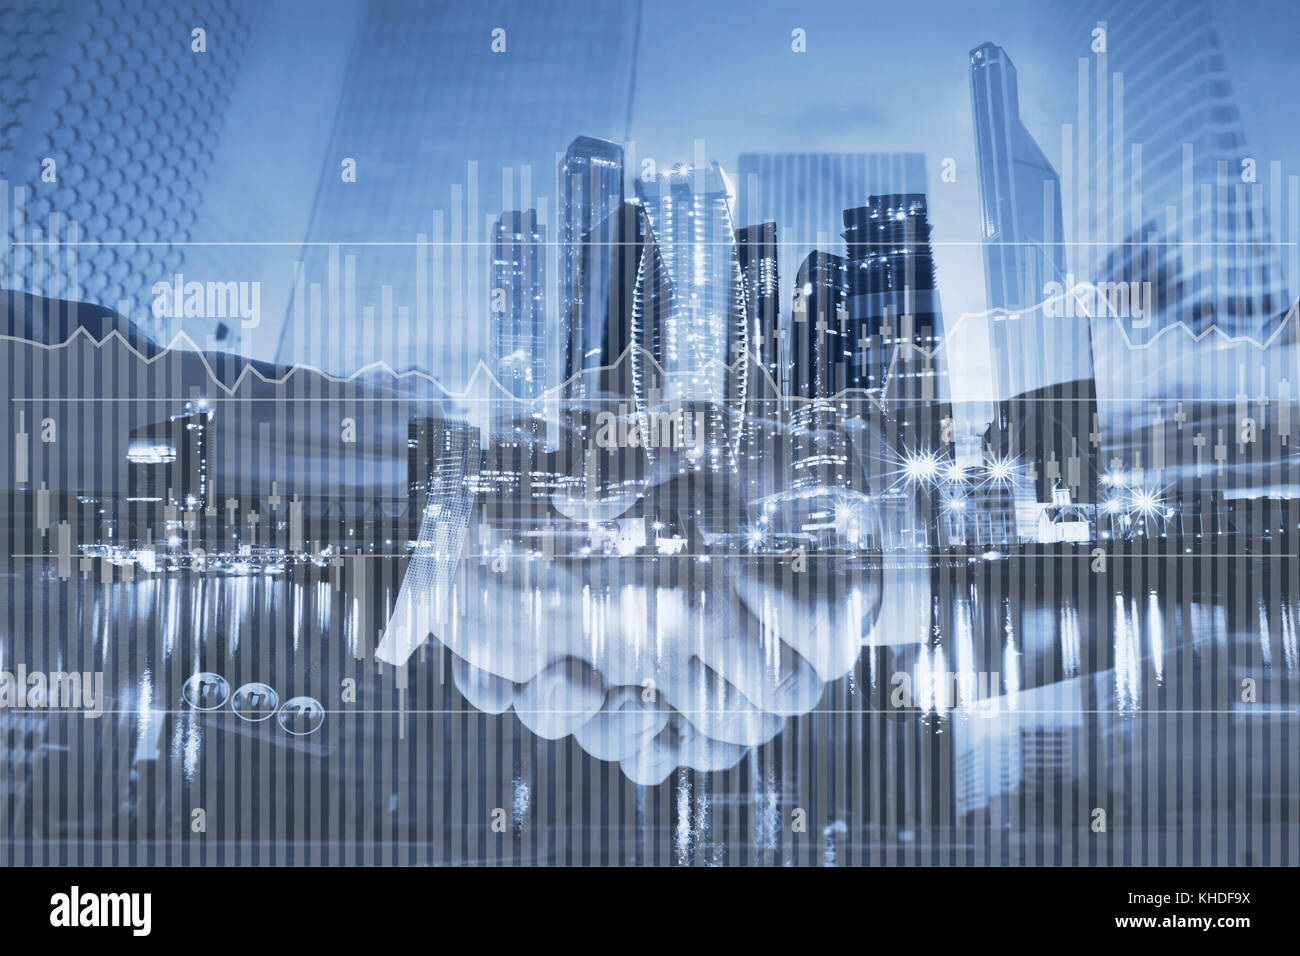 interest rates concept, financial charts and graphs about investment on business double exposure background - Stock Image